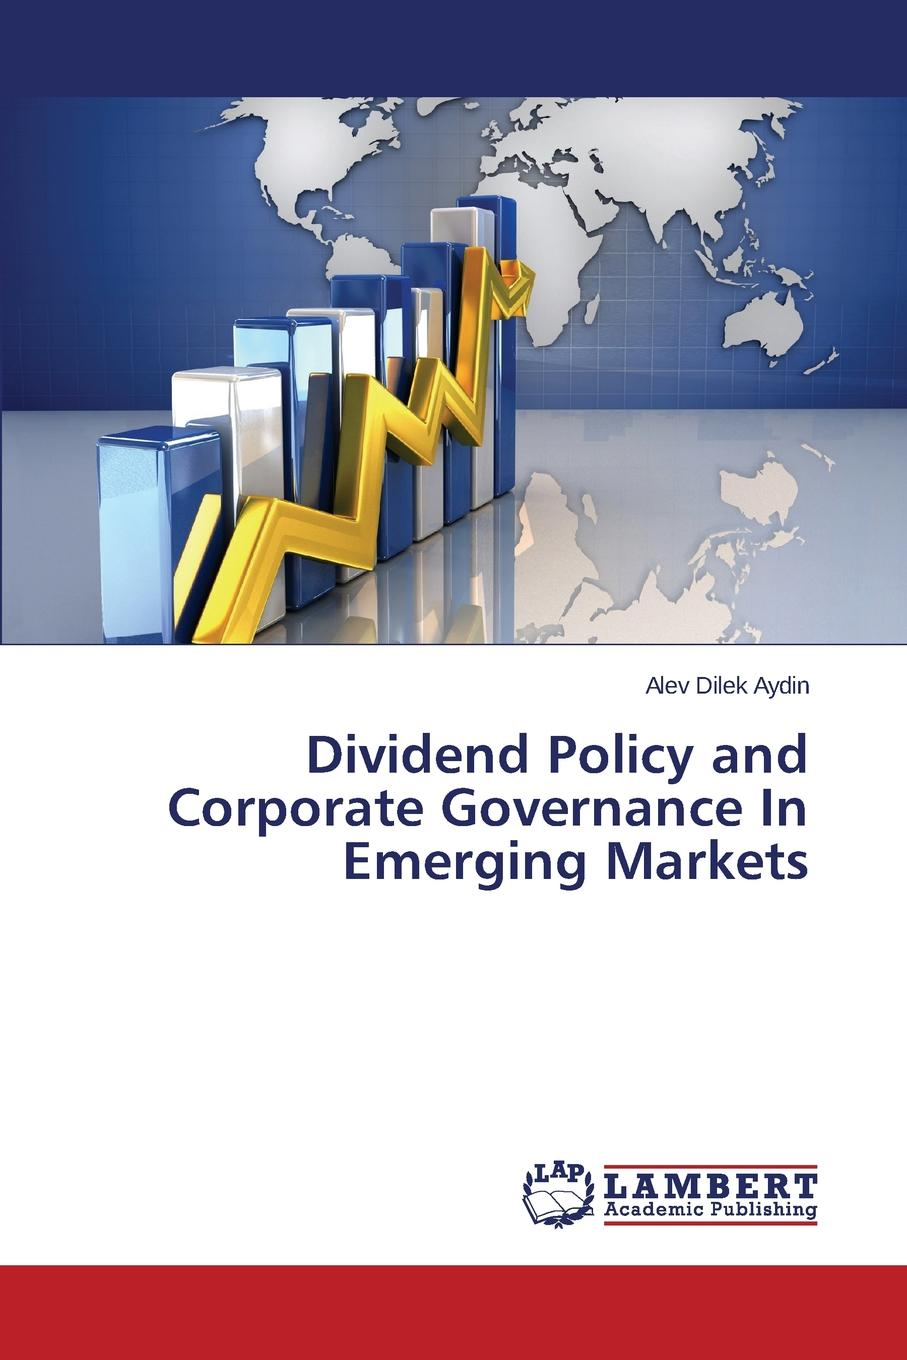 Aydin Alev Dilek Dividend Policy and Corporate Governance In Emerging Markets